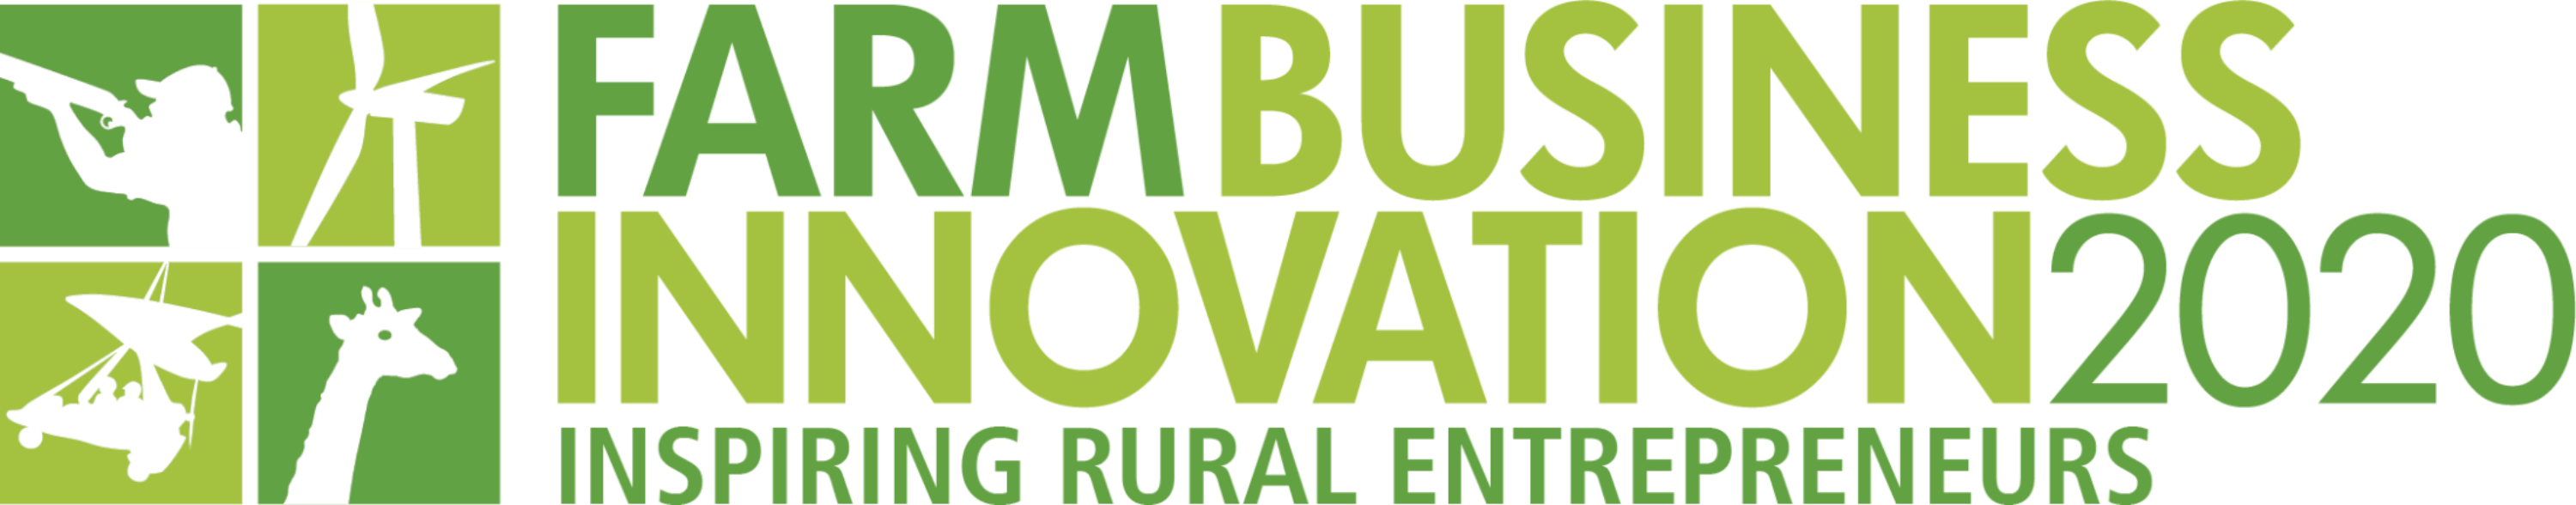 The Farm Business Innovation Show